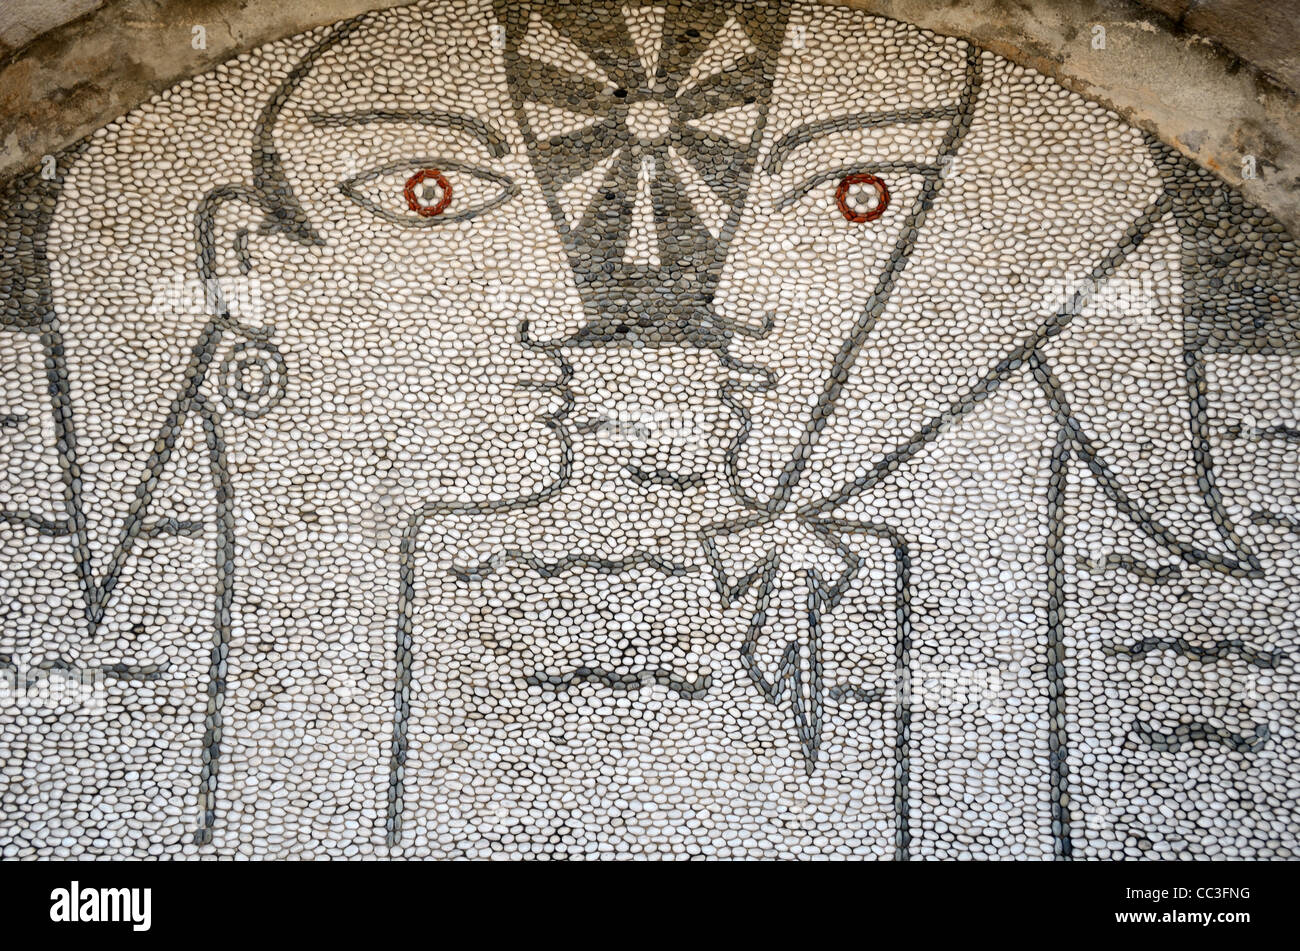 Wall Mosaic or Pebble Mosaic of Young Lovers Based on Artwork by Jean Cocteau, Jean Cocteau Museum, Menton, France - Stock Image